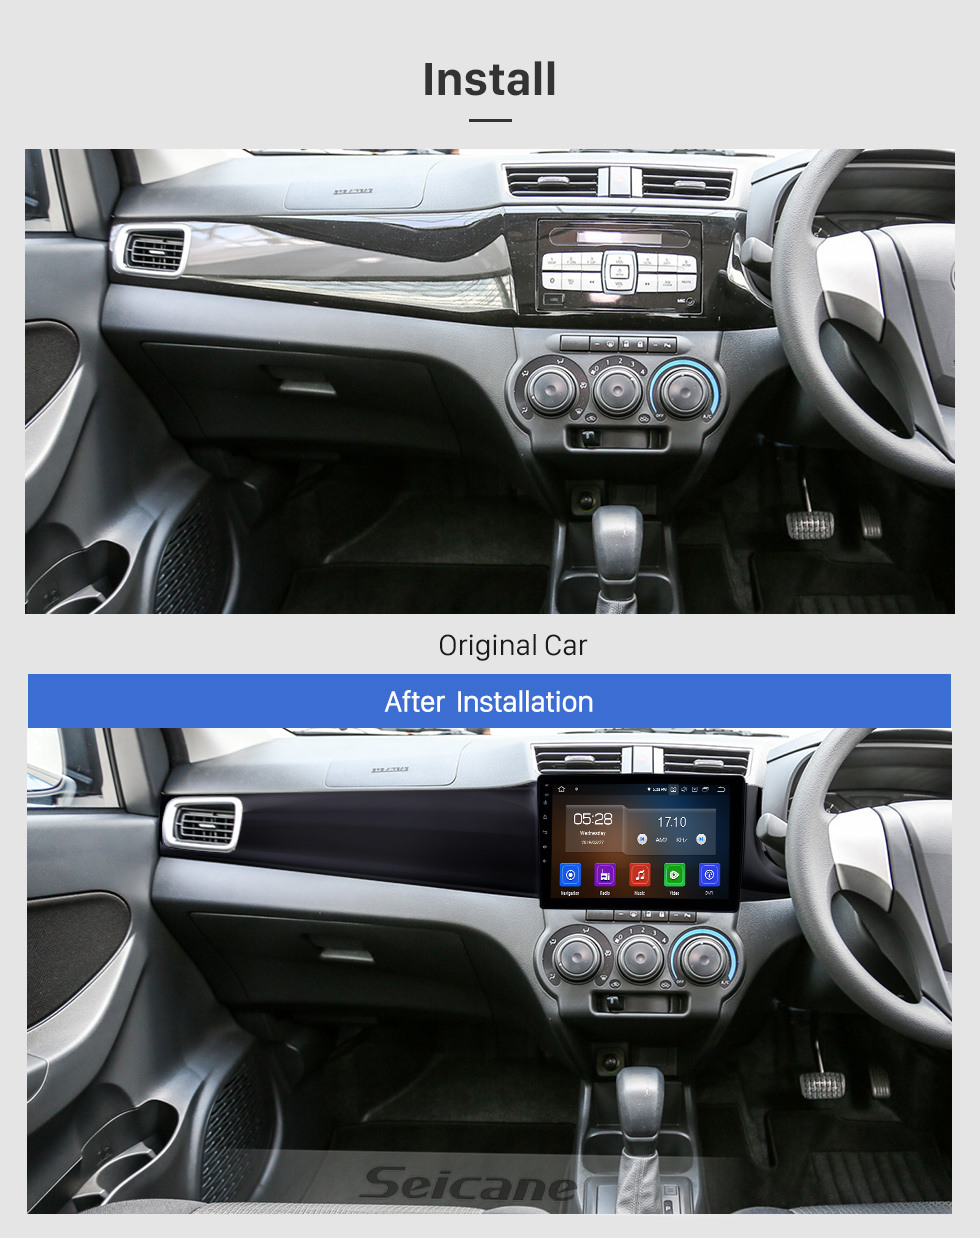 Seicane 10.1 inch 2016-2019 Perodua Bezza Android 10.0 GPS Navigation Radio Bluetooth Touchscreen AUX Carplay support OBD2 DAB+ 1080P Video